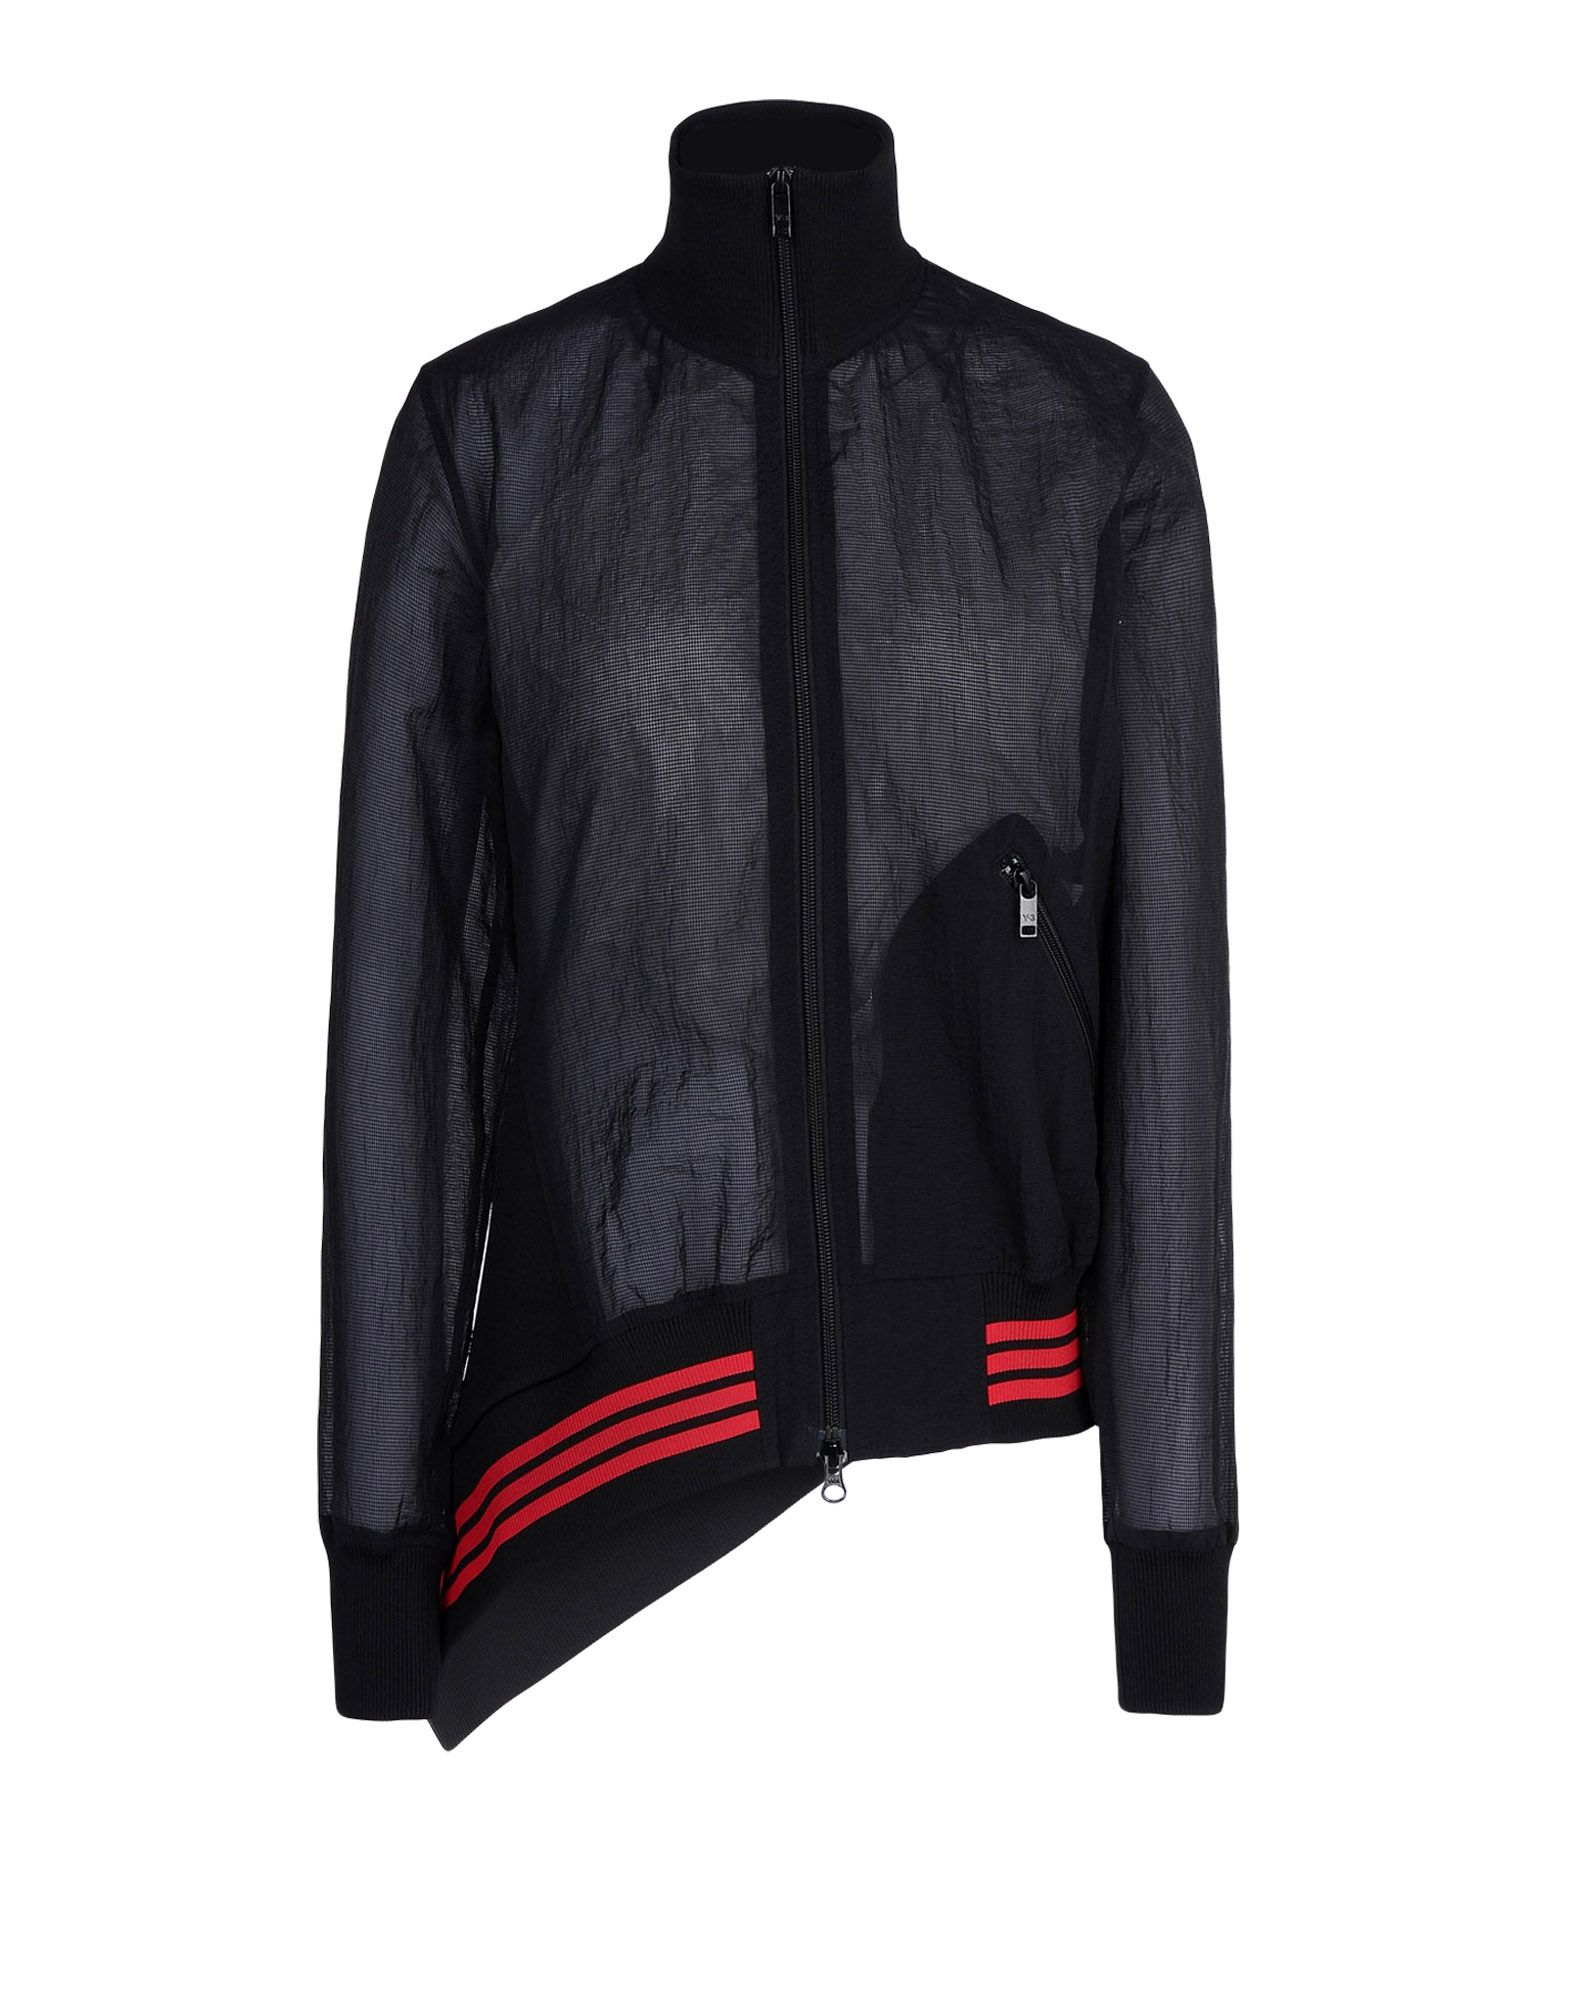 y 3 air mesh blouson for women adidas y 3 official store. Black Bedroom Furniture Sets. Home Design Ideas